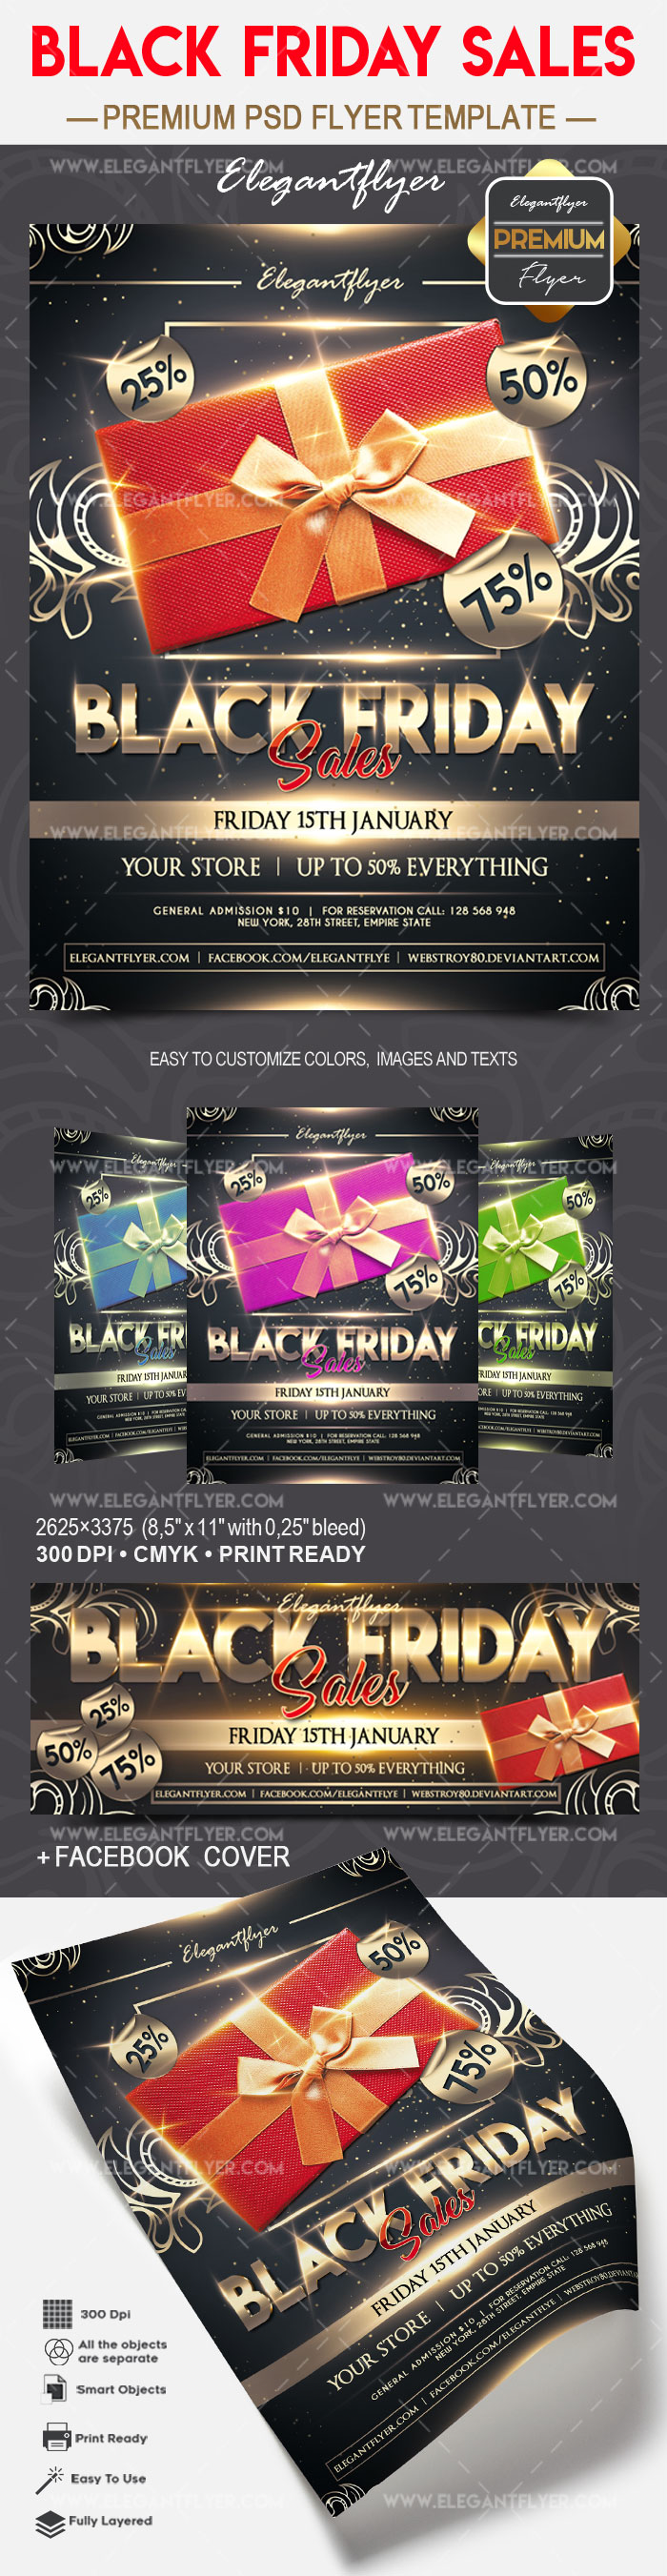 Black friday sales – Flyer PSD Template